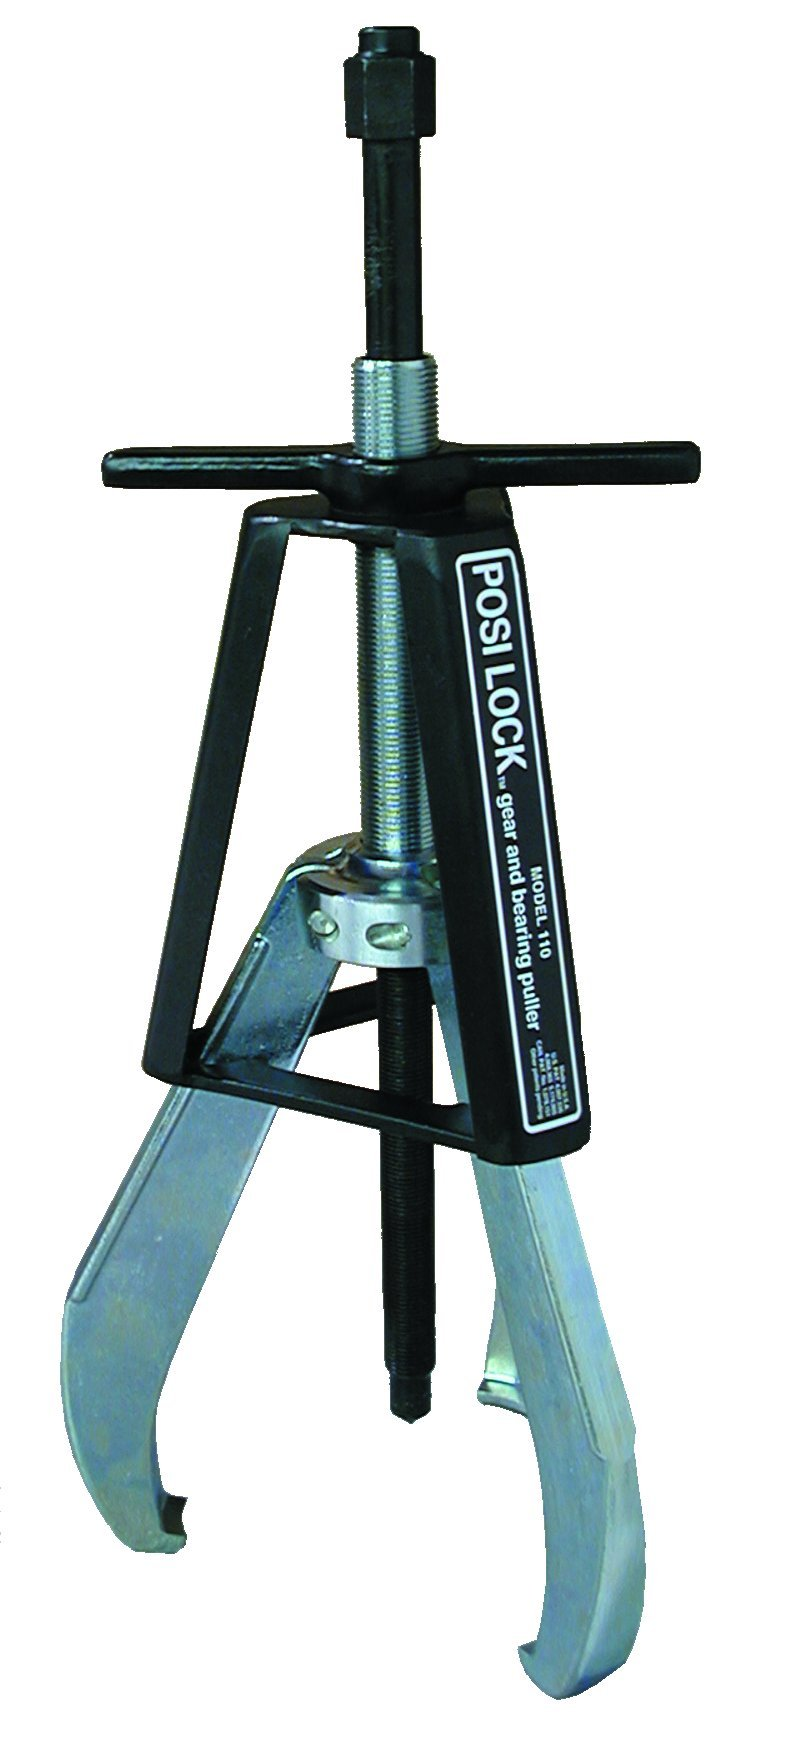 Posi Lock 110 Manual Puller, 3 Jaws, 20 tons Capacity, 9-2/3'' Reach, 1'' - 15'' Spread Range, 20-2/5'' Overall Length by Posi Lock Puller